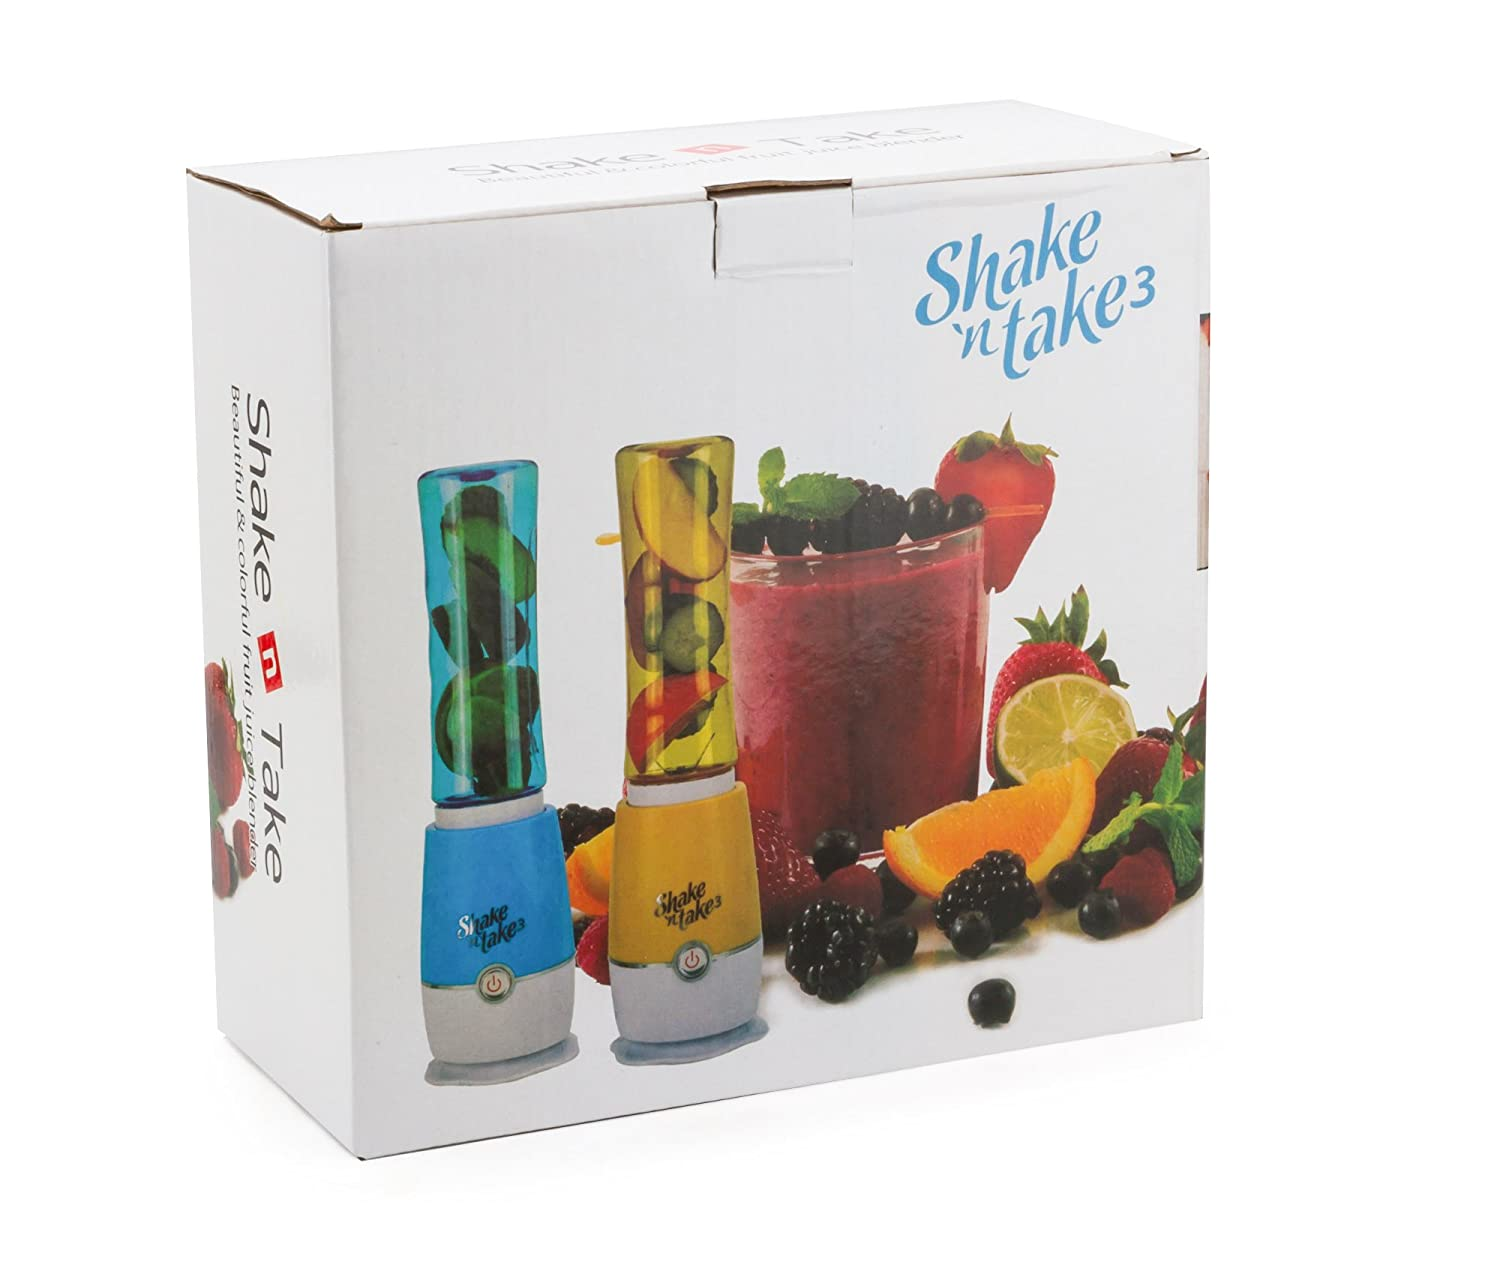 Buy Shake N Take 3 With 2 Sports Bottle Blender Juicer 180w Random And Color Blue Green Online At Low Prices In India